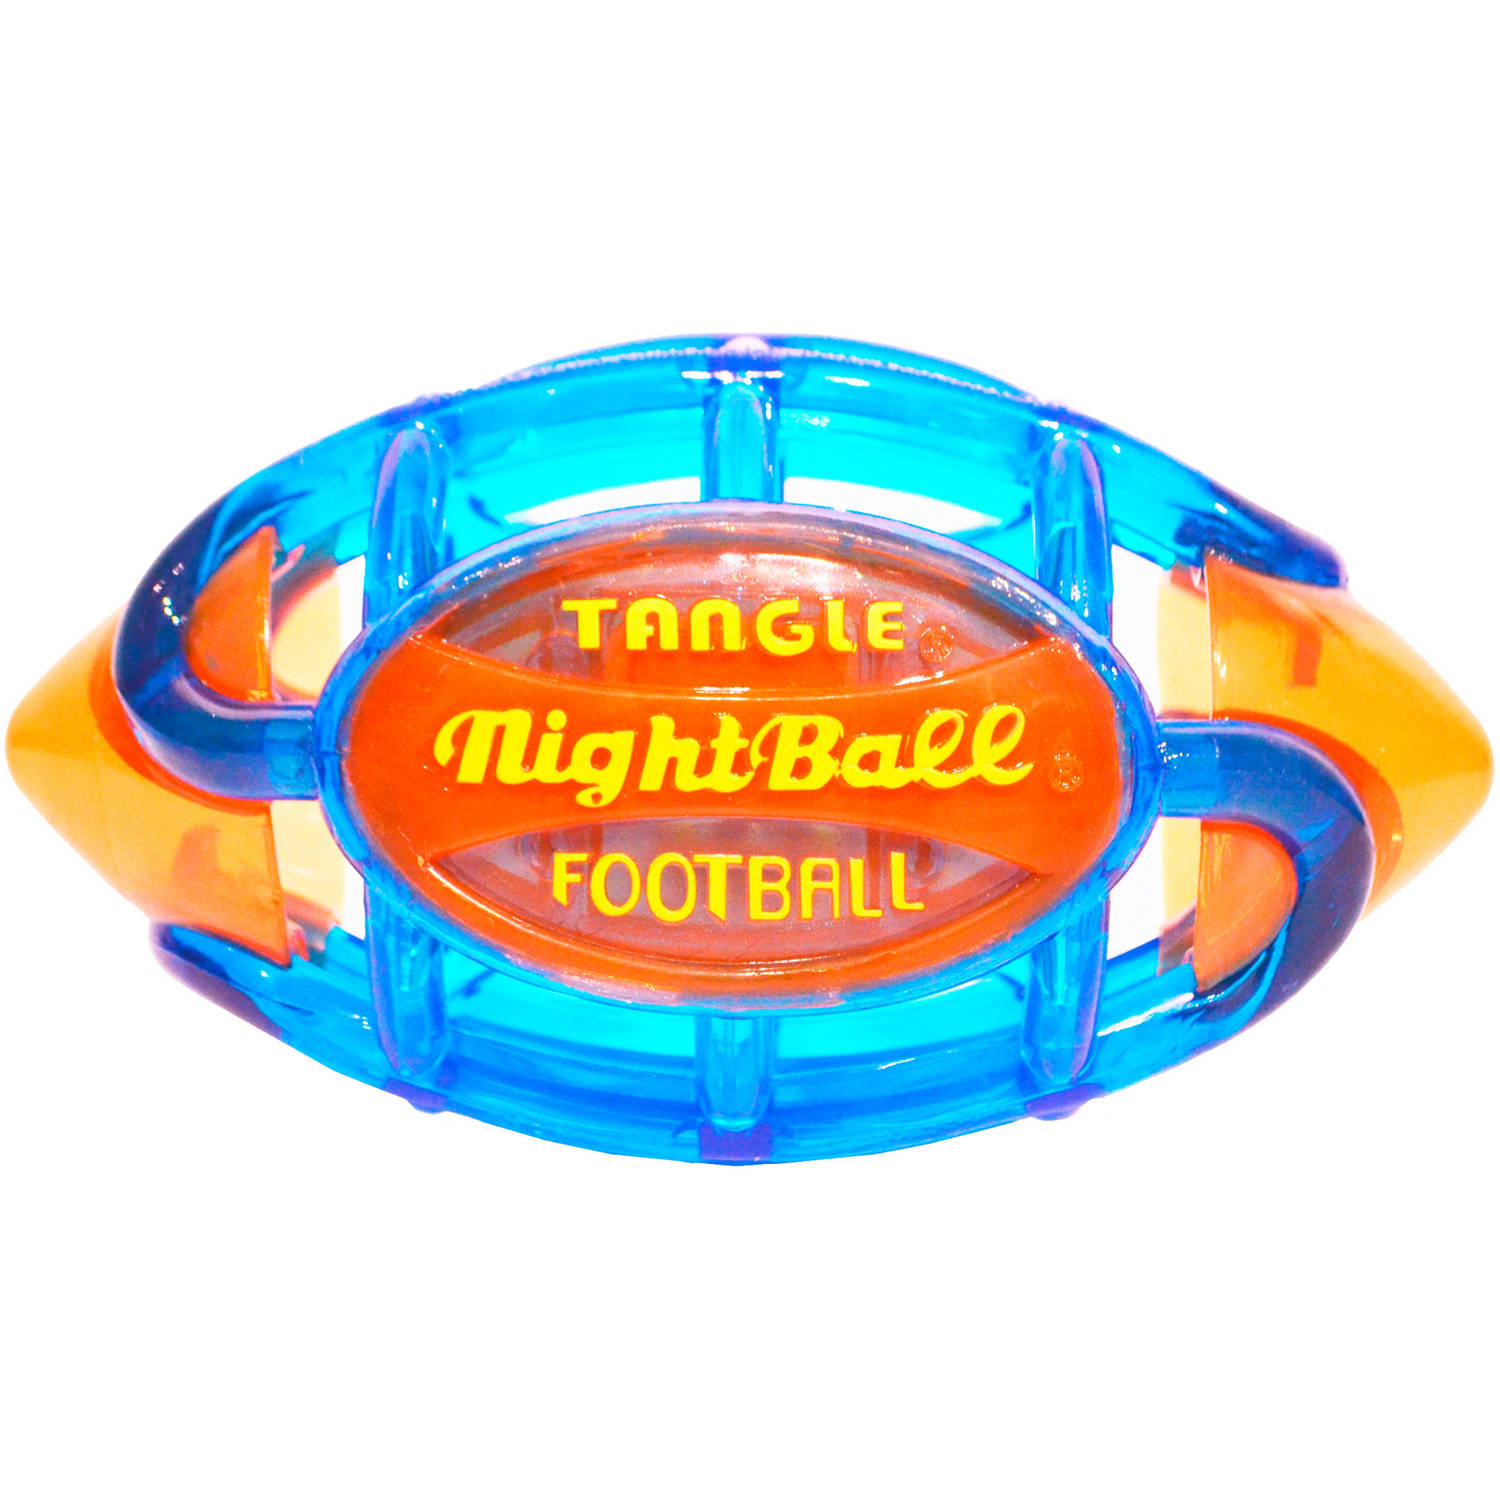 Tangle NightBall Large Football, Blue by Tangle